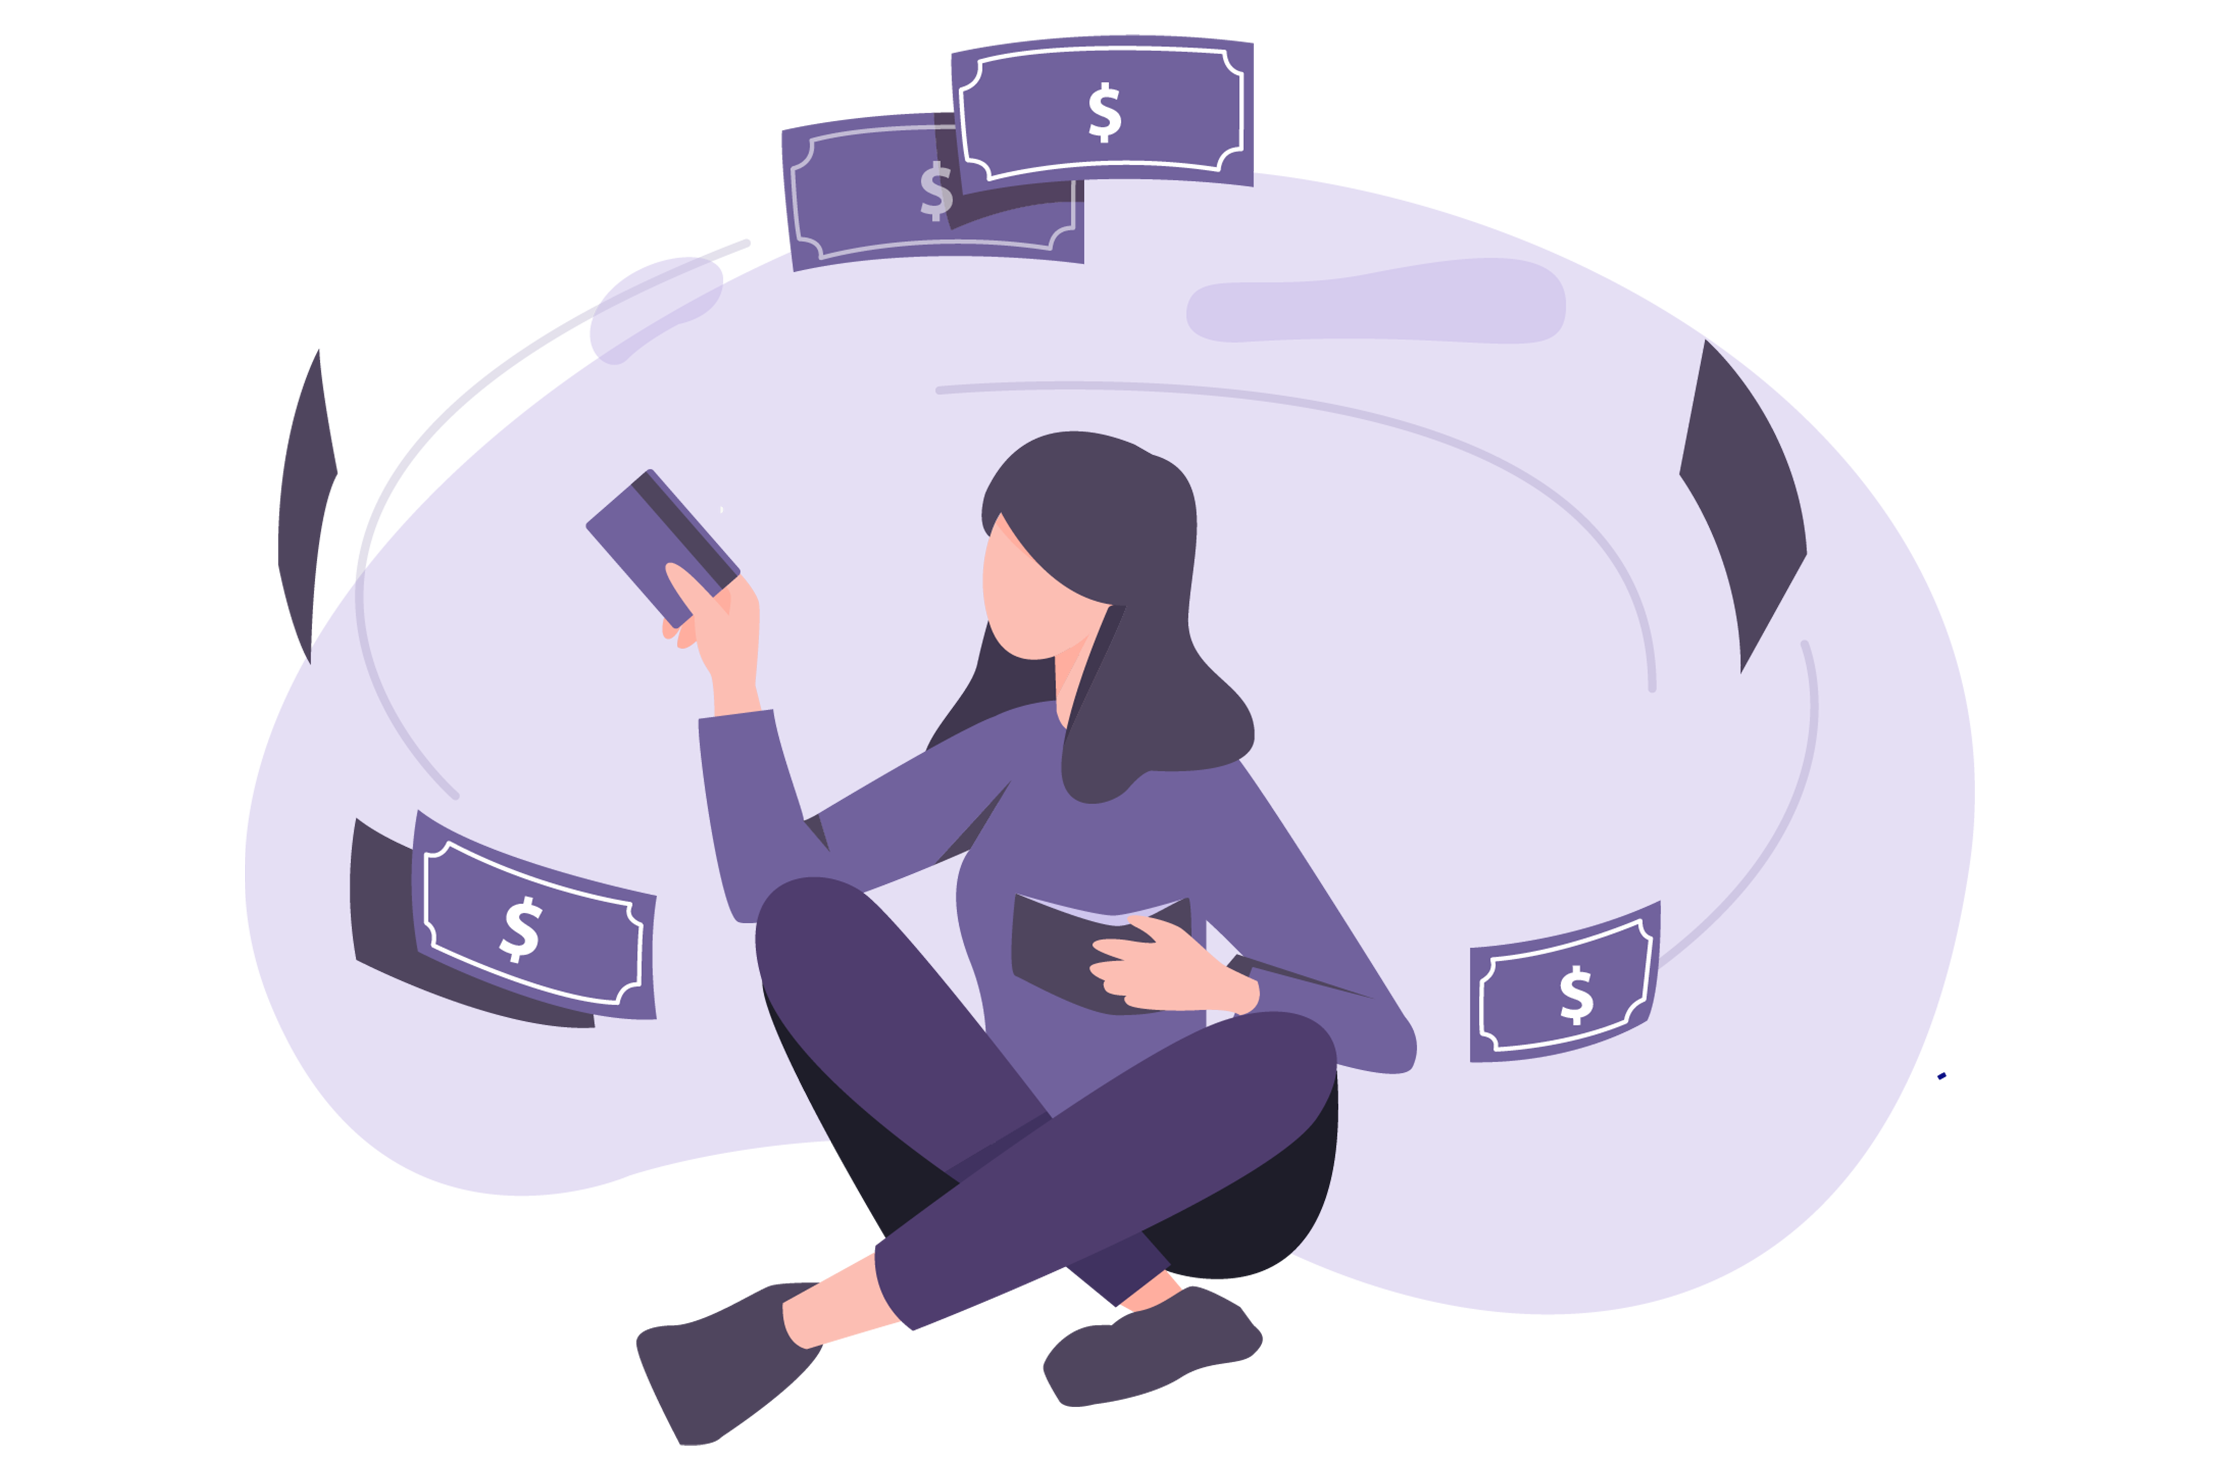 Illustration of woman holding credit card and wallet, enjoying cash flowing freely